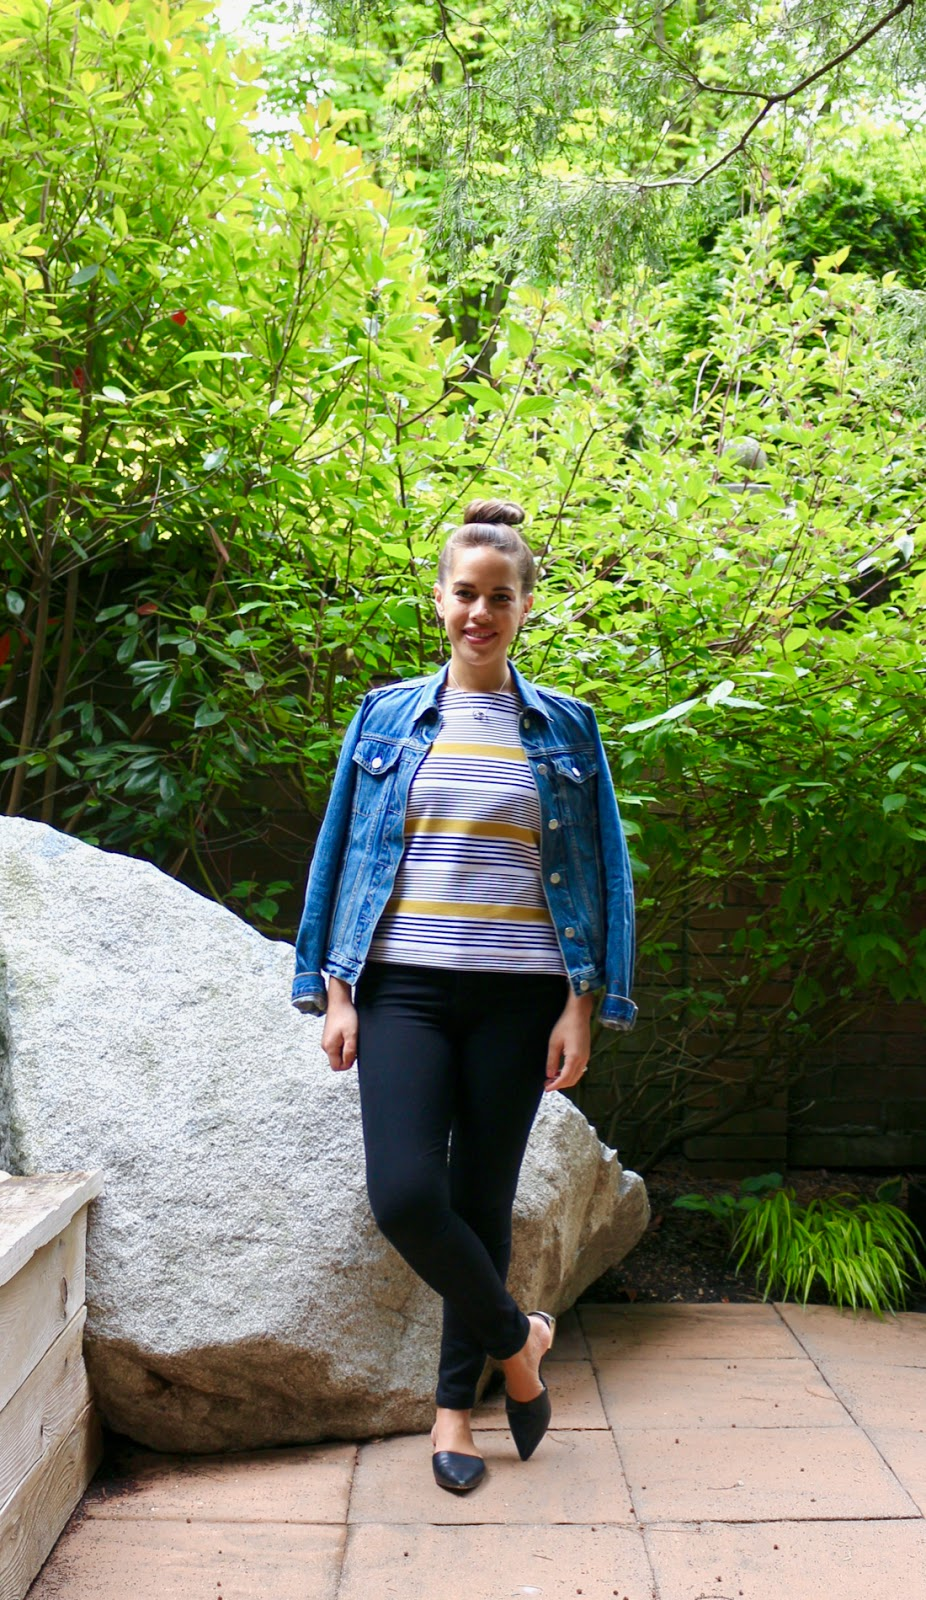 Jules in Flats - Boxy Striped Top & Black Skinny Jeans (Business Casual Spring Workwear on a Budget)